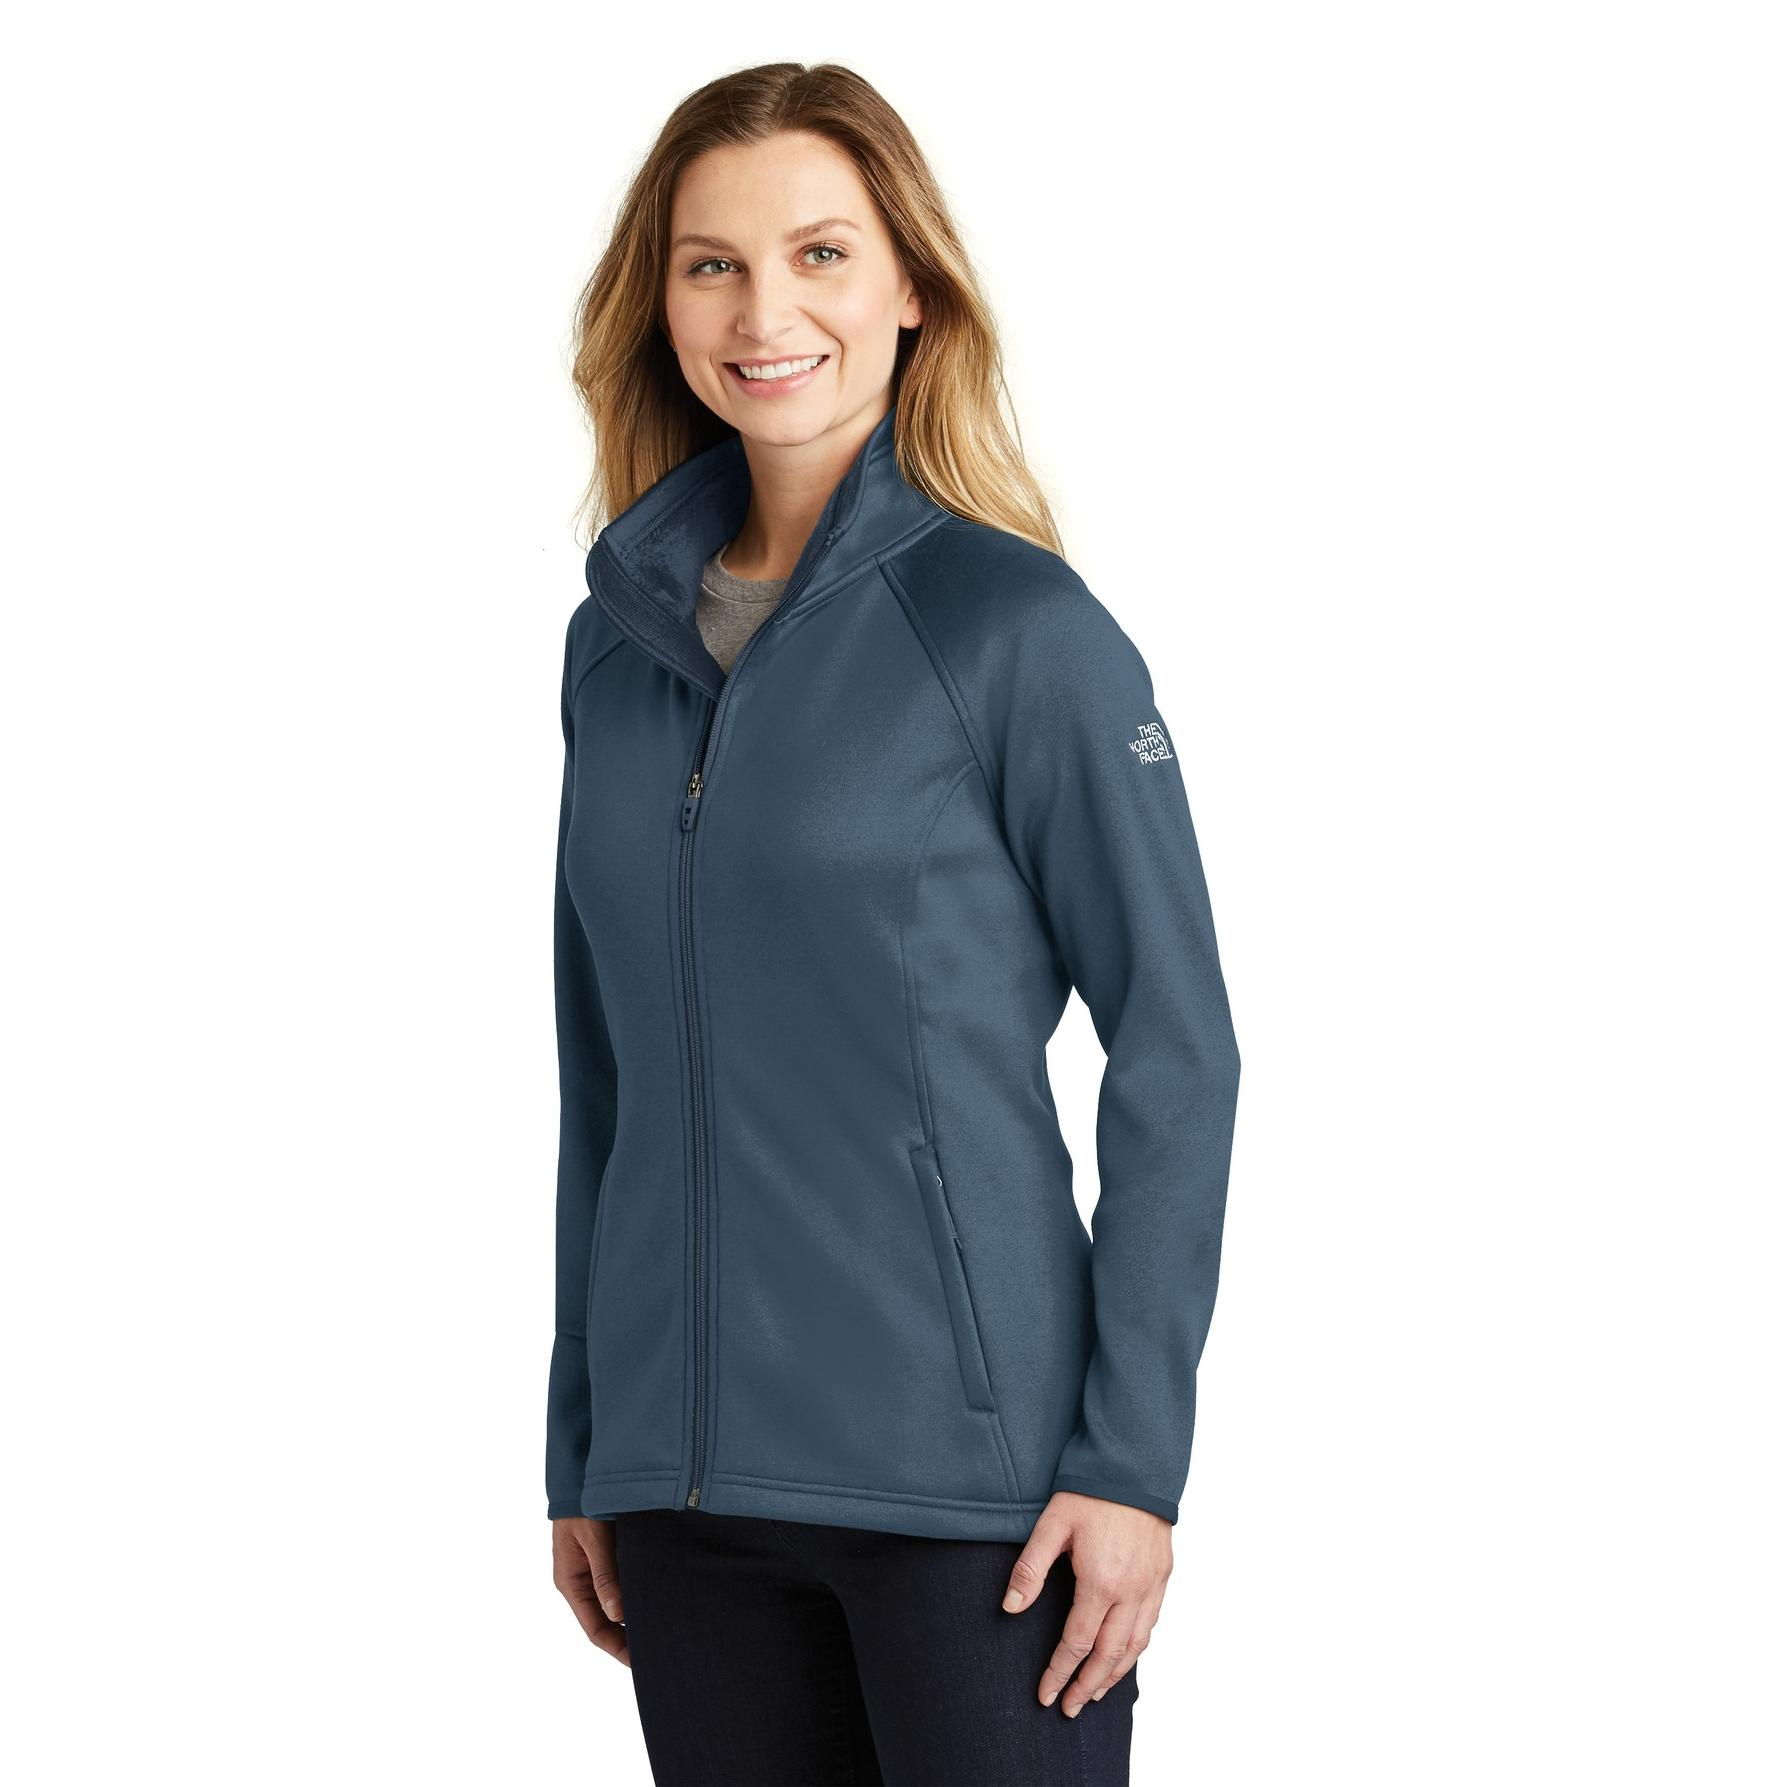 afc42662a54f The North Face NF0A3LH9 Ladies Canyon Flats Stretch Fleece Jacket ...